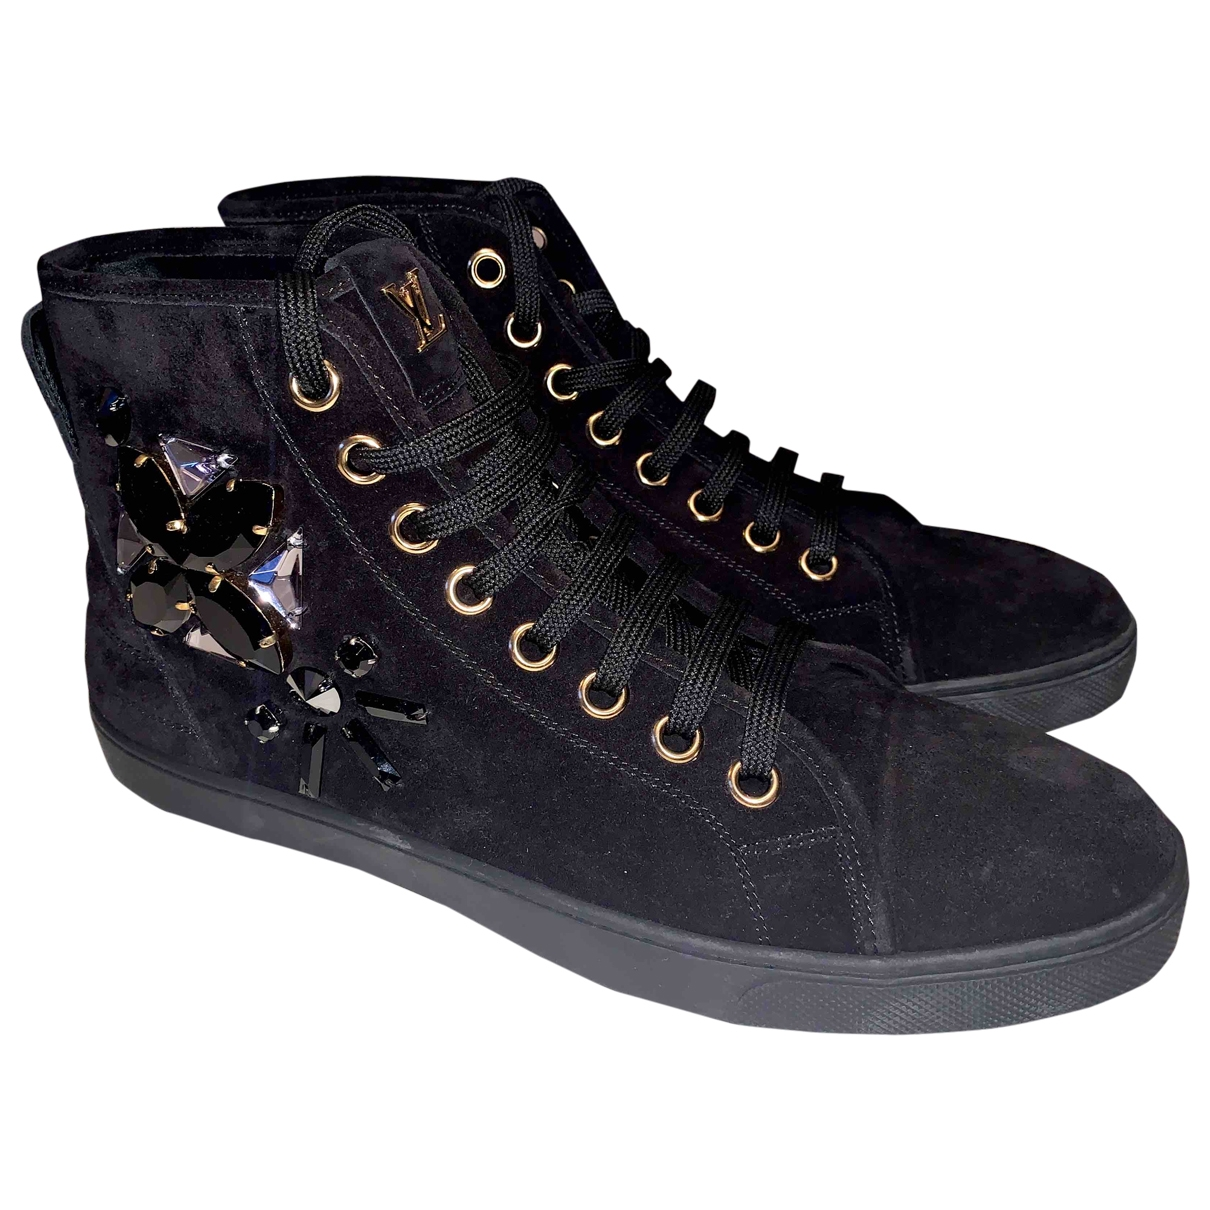 Louis Vuitton \N Black Suede Trainers for Women 40 EU